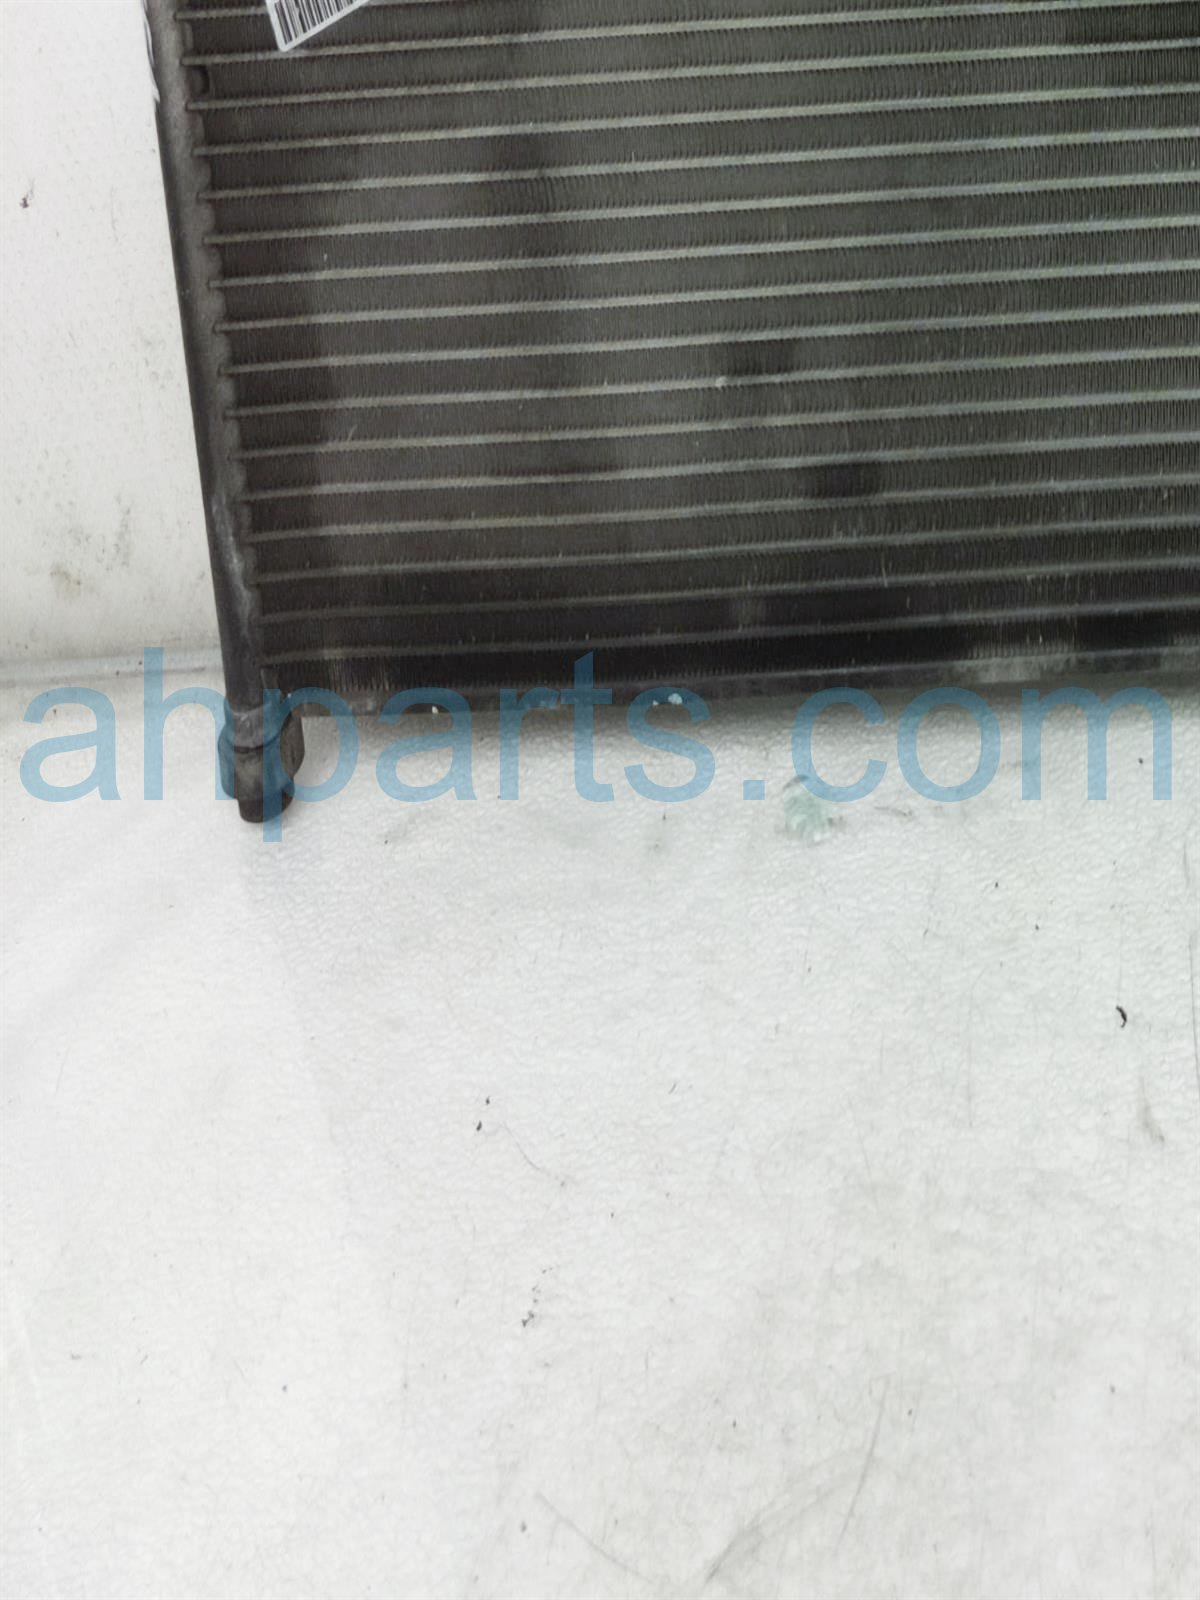 2003 Honda Insight Ac Condenser 80110 S3Y A01 Replacement